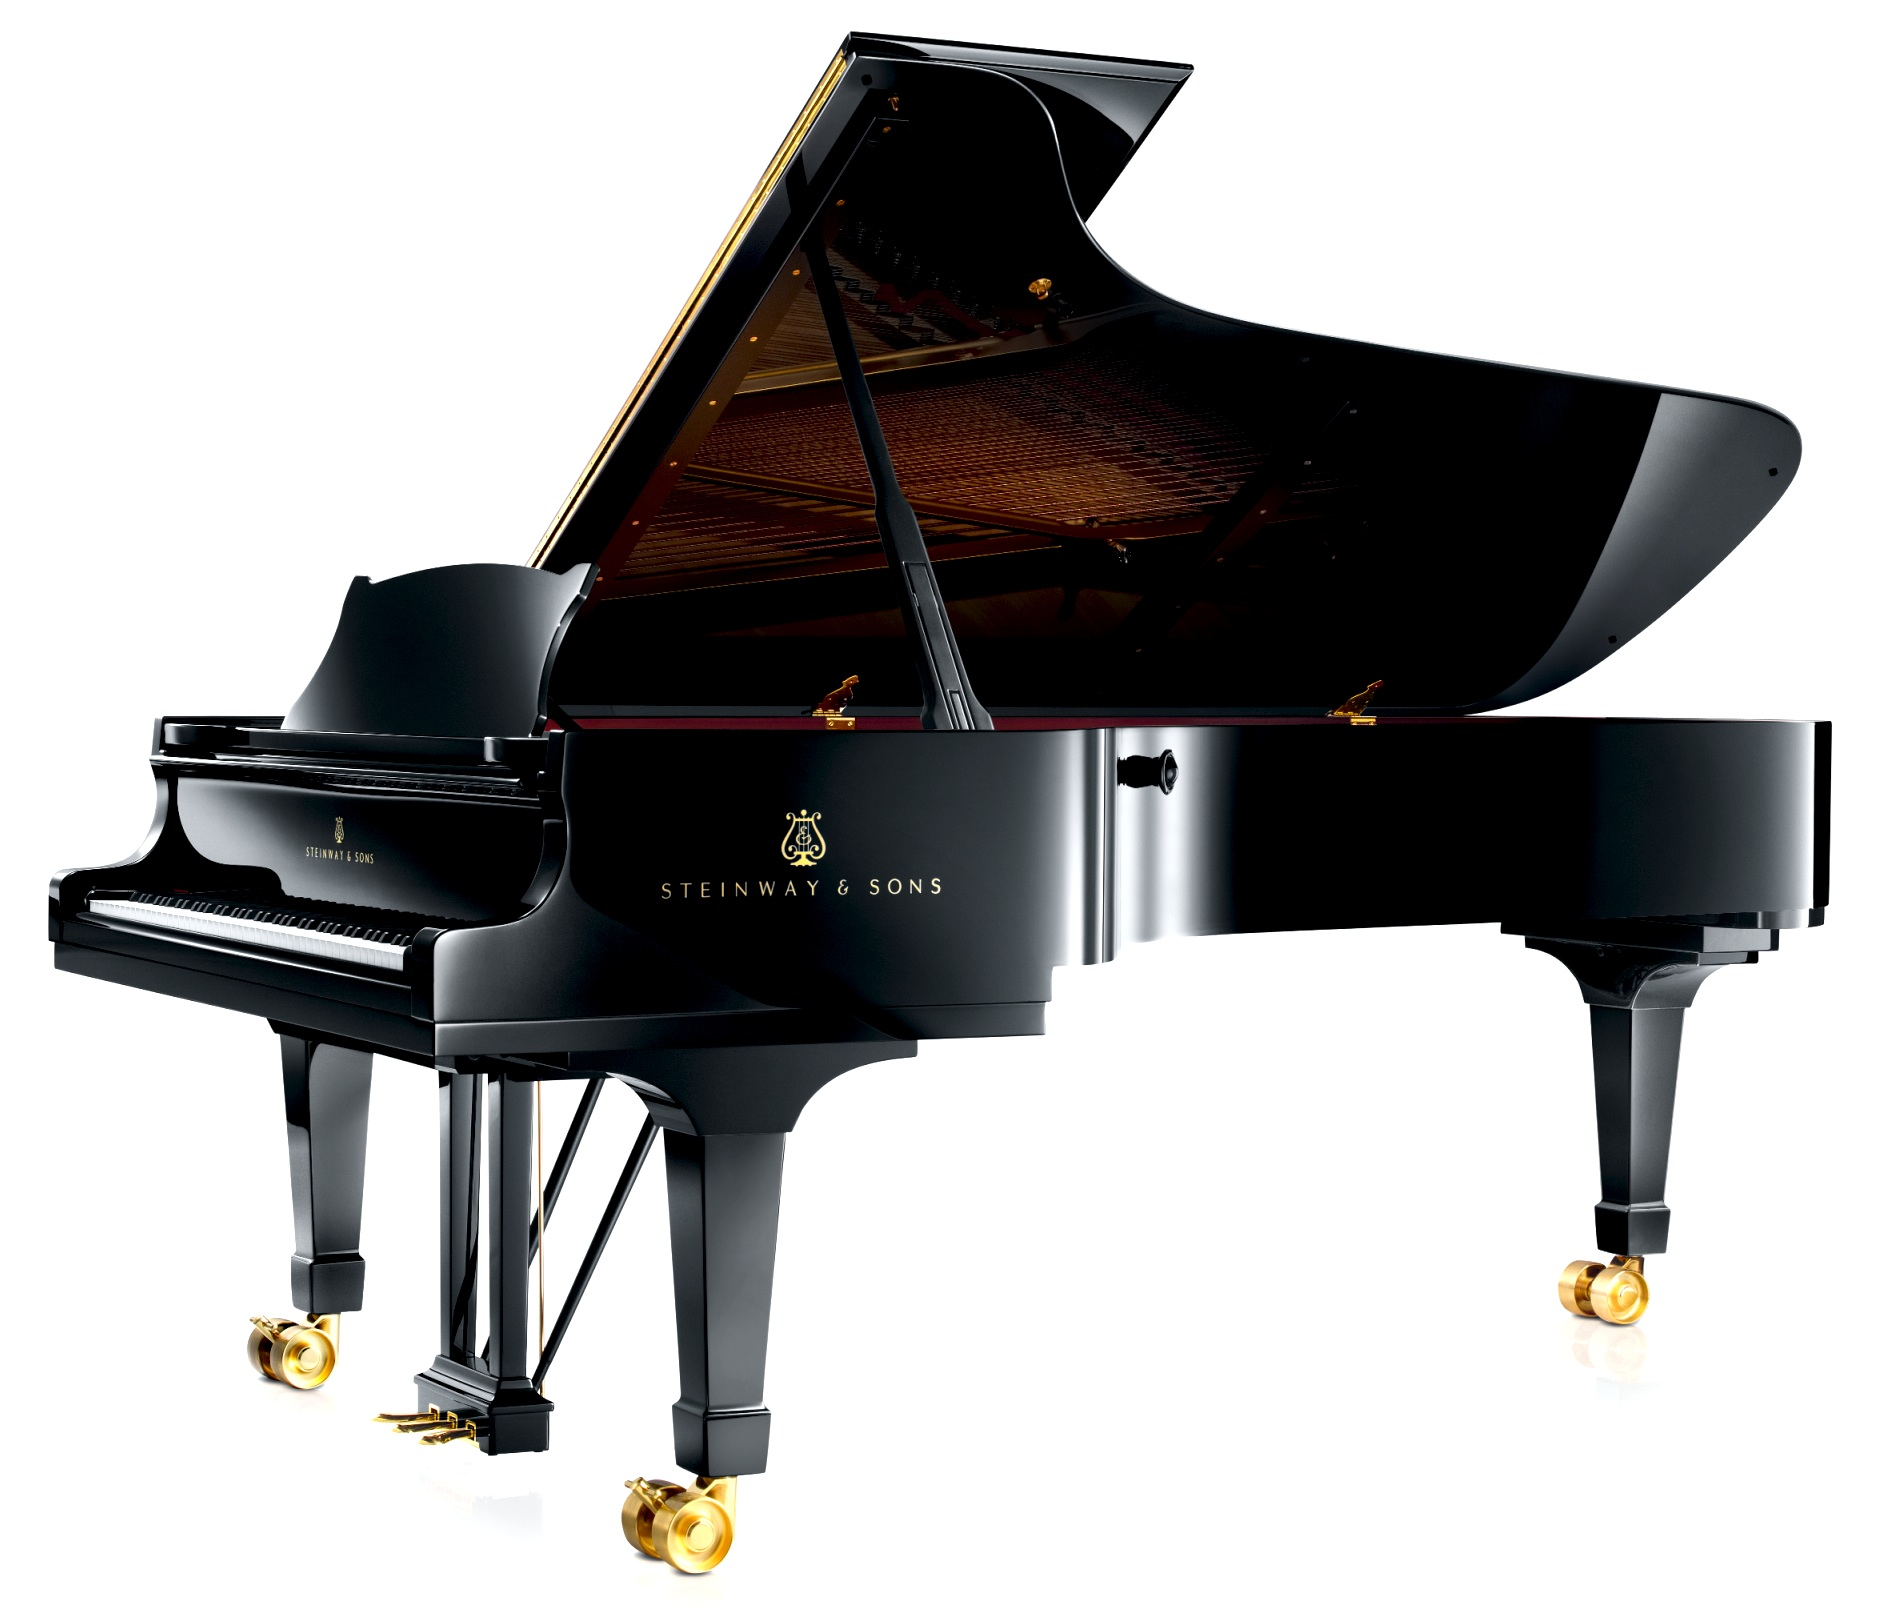 file steinway sons concert grand piano model d 274 manufactured at steinway 39 s factory in. Black Bedroom Furniture Sets. Home Design Ideas